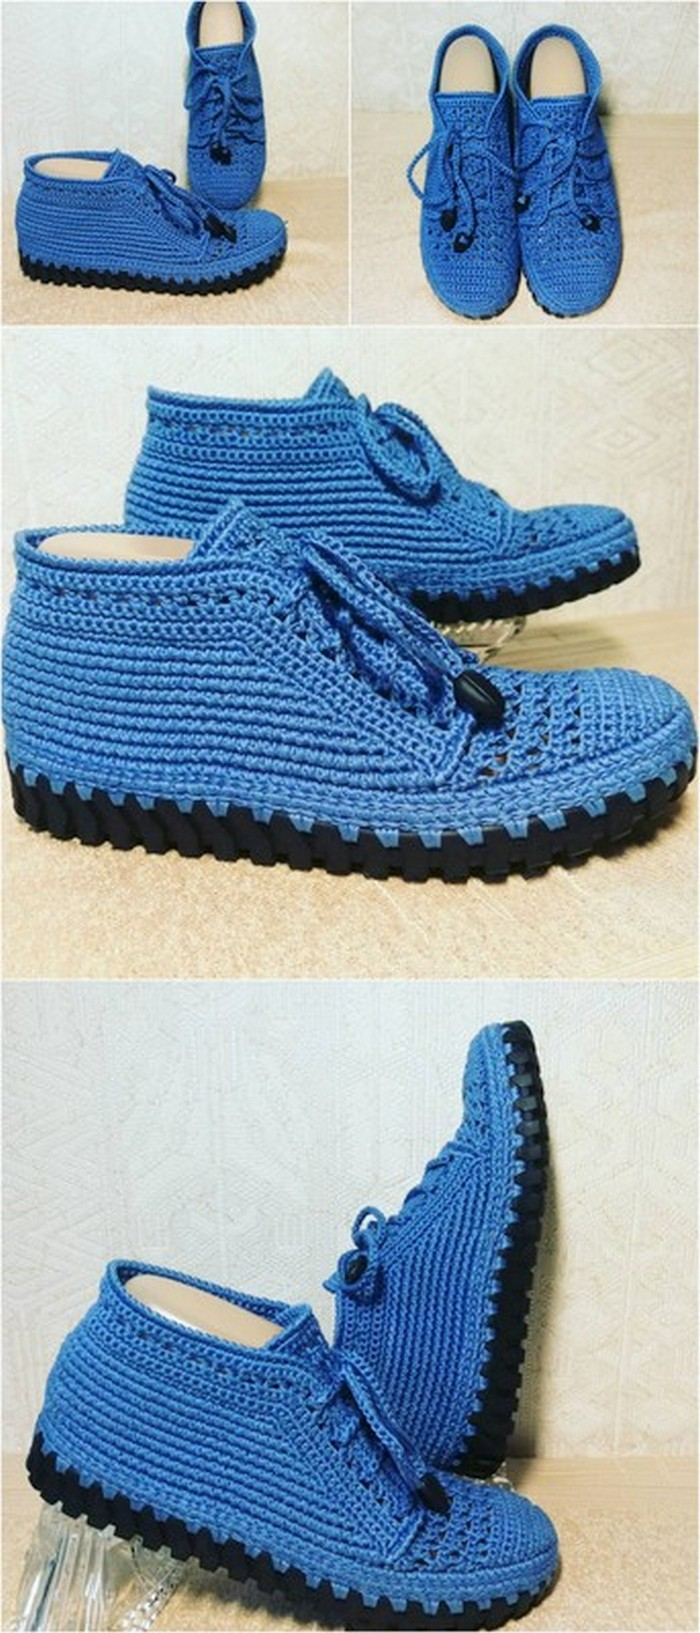 incredible crochet shoes plan